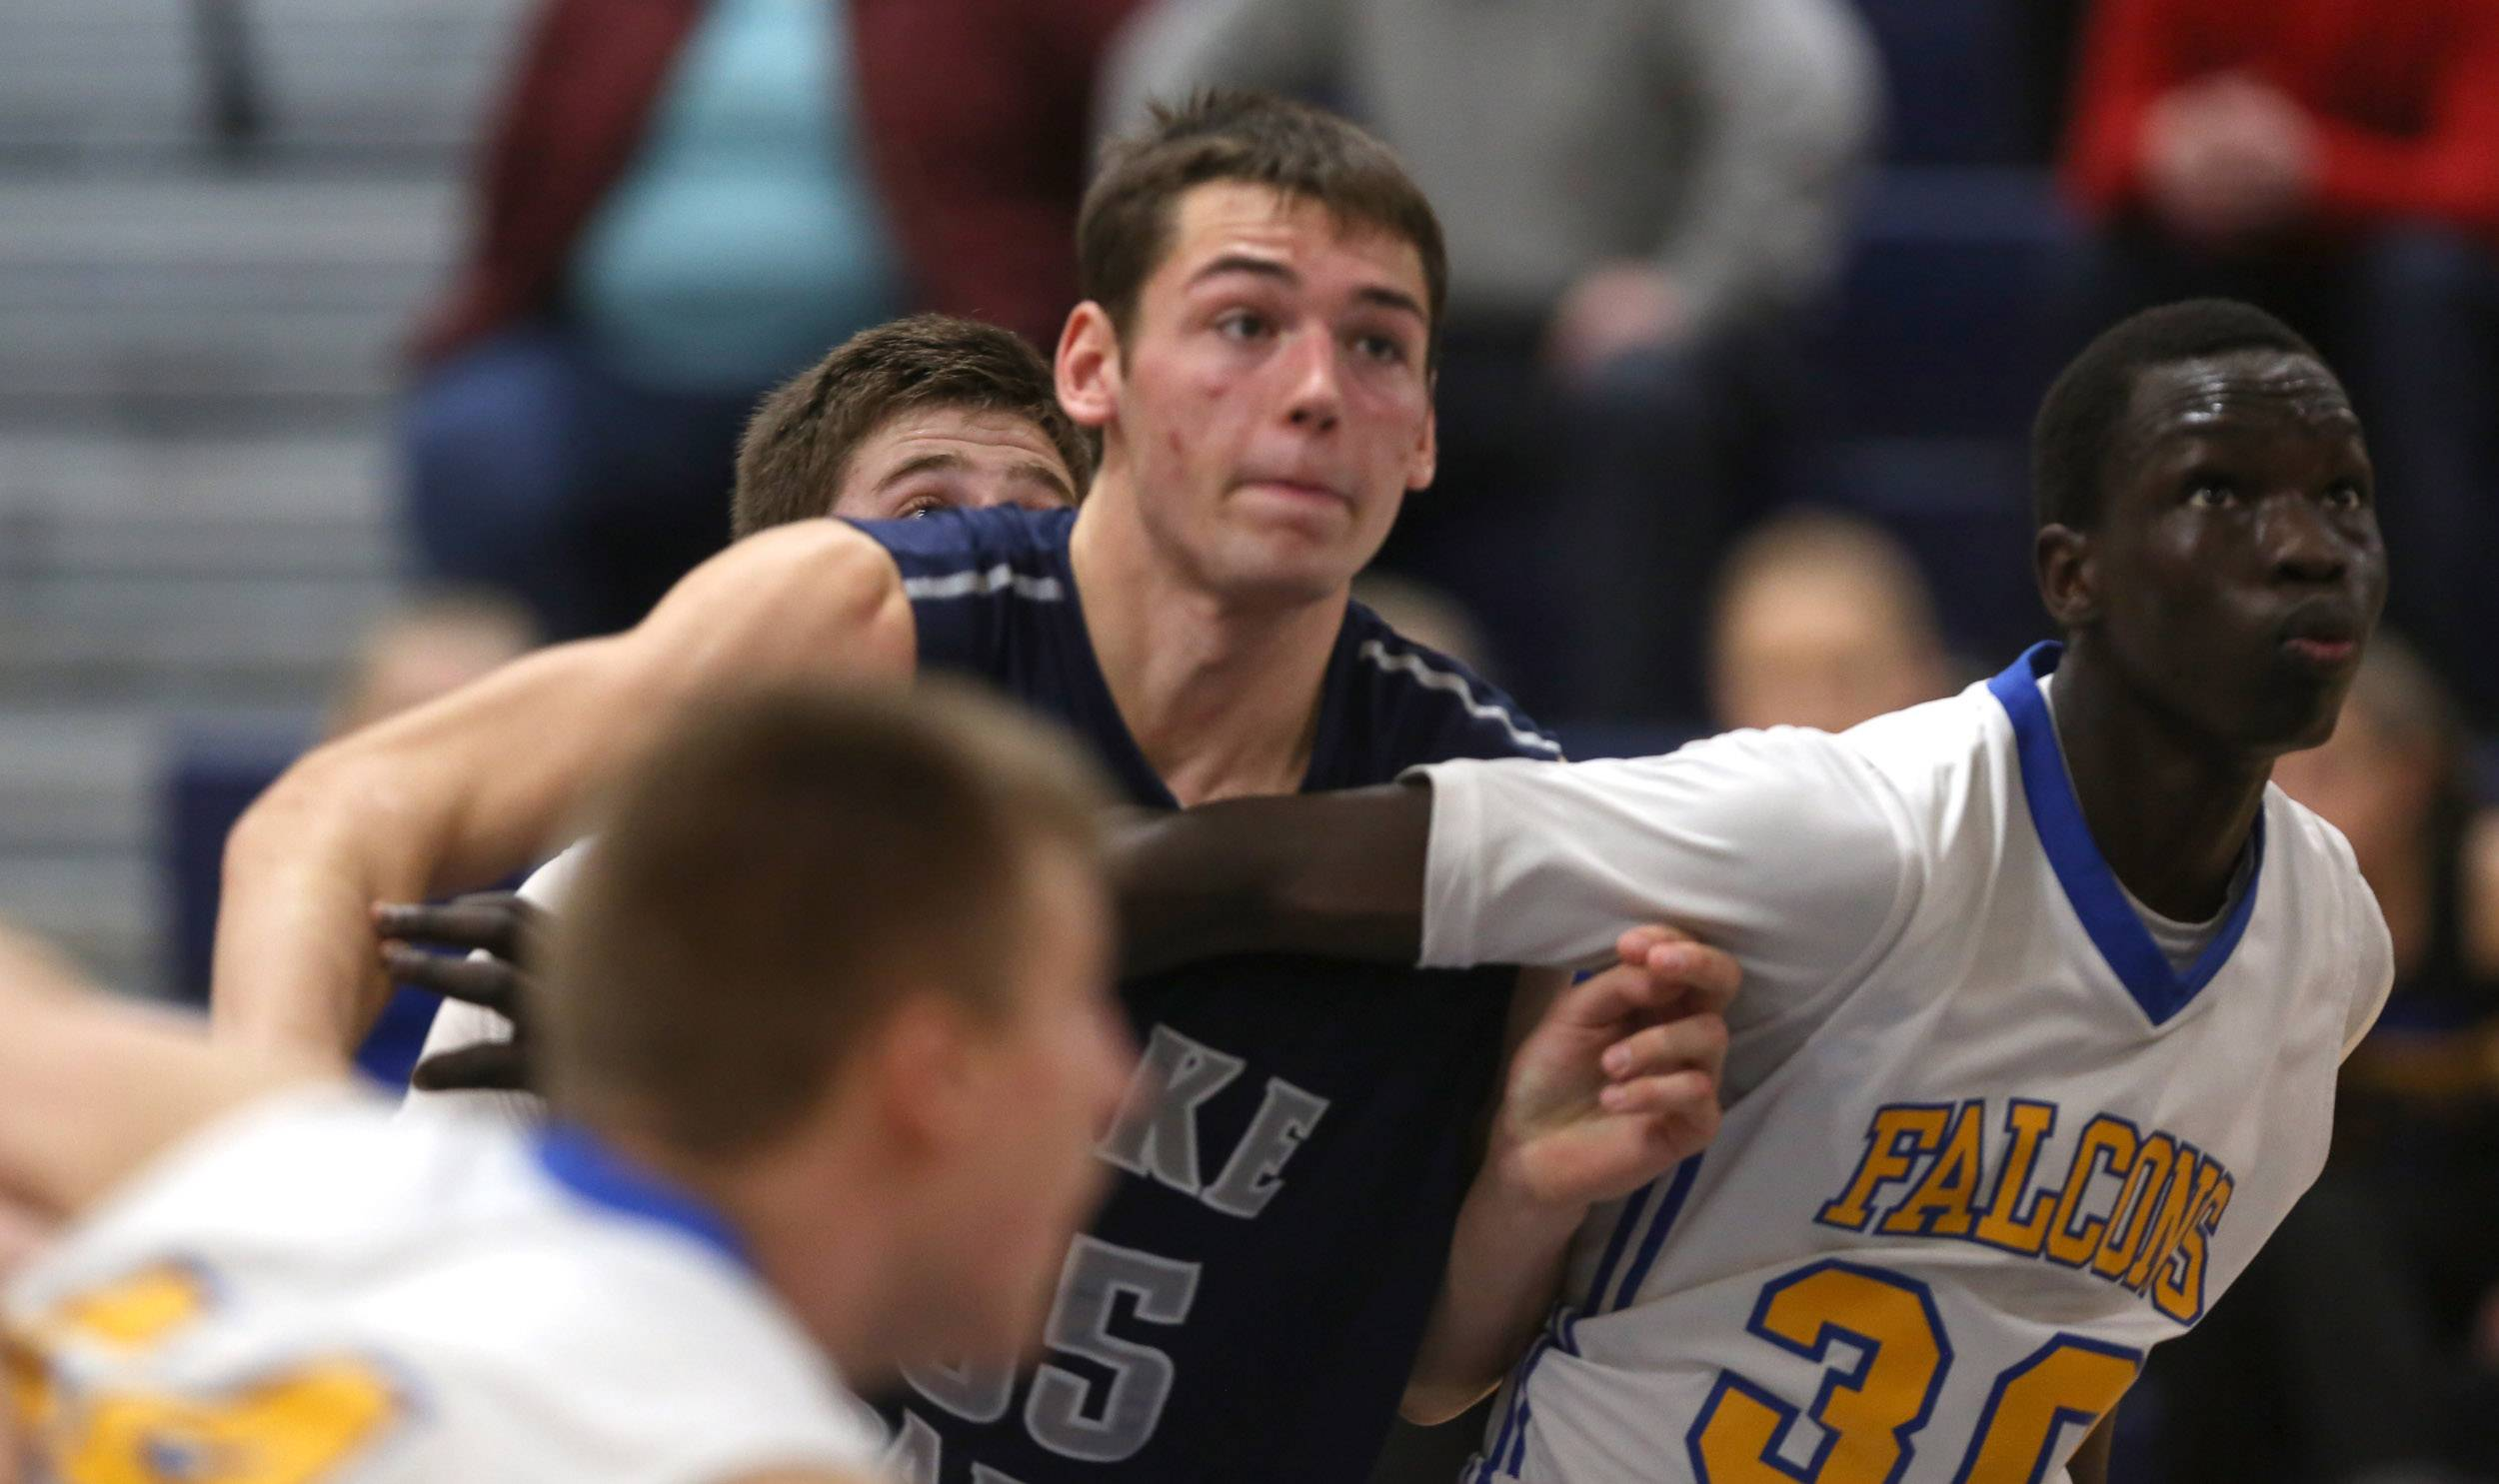 DuPage County Class 3A and Class 4A boys basketball playoff preview